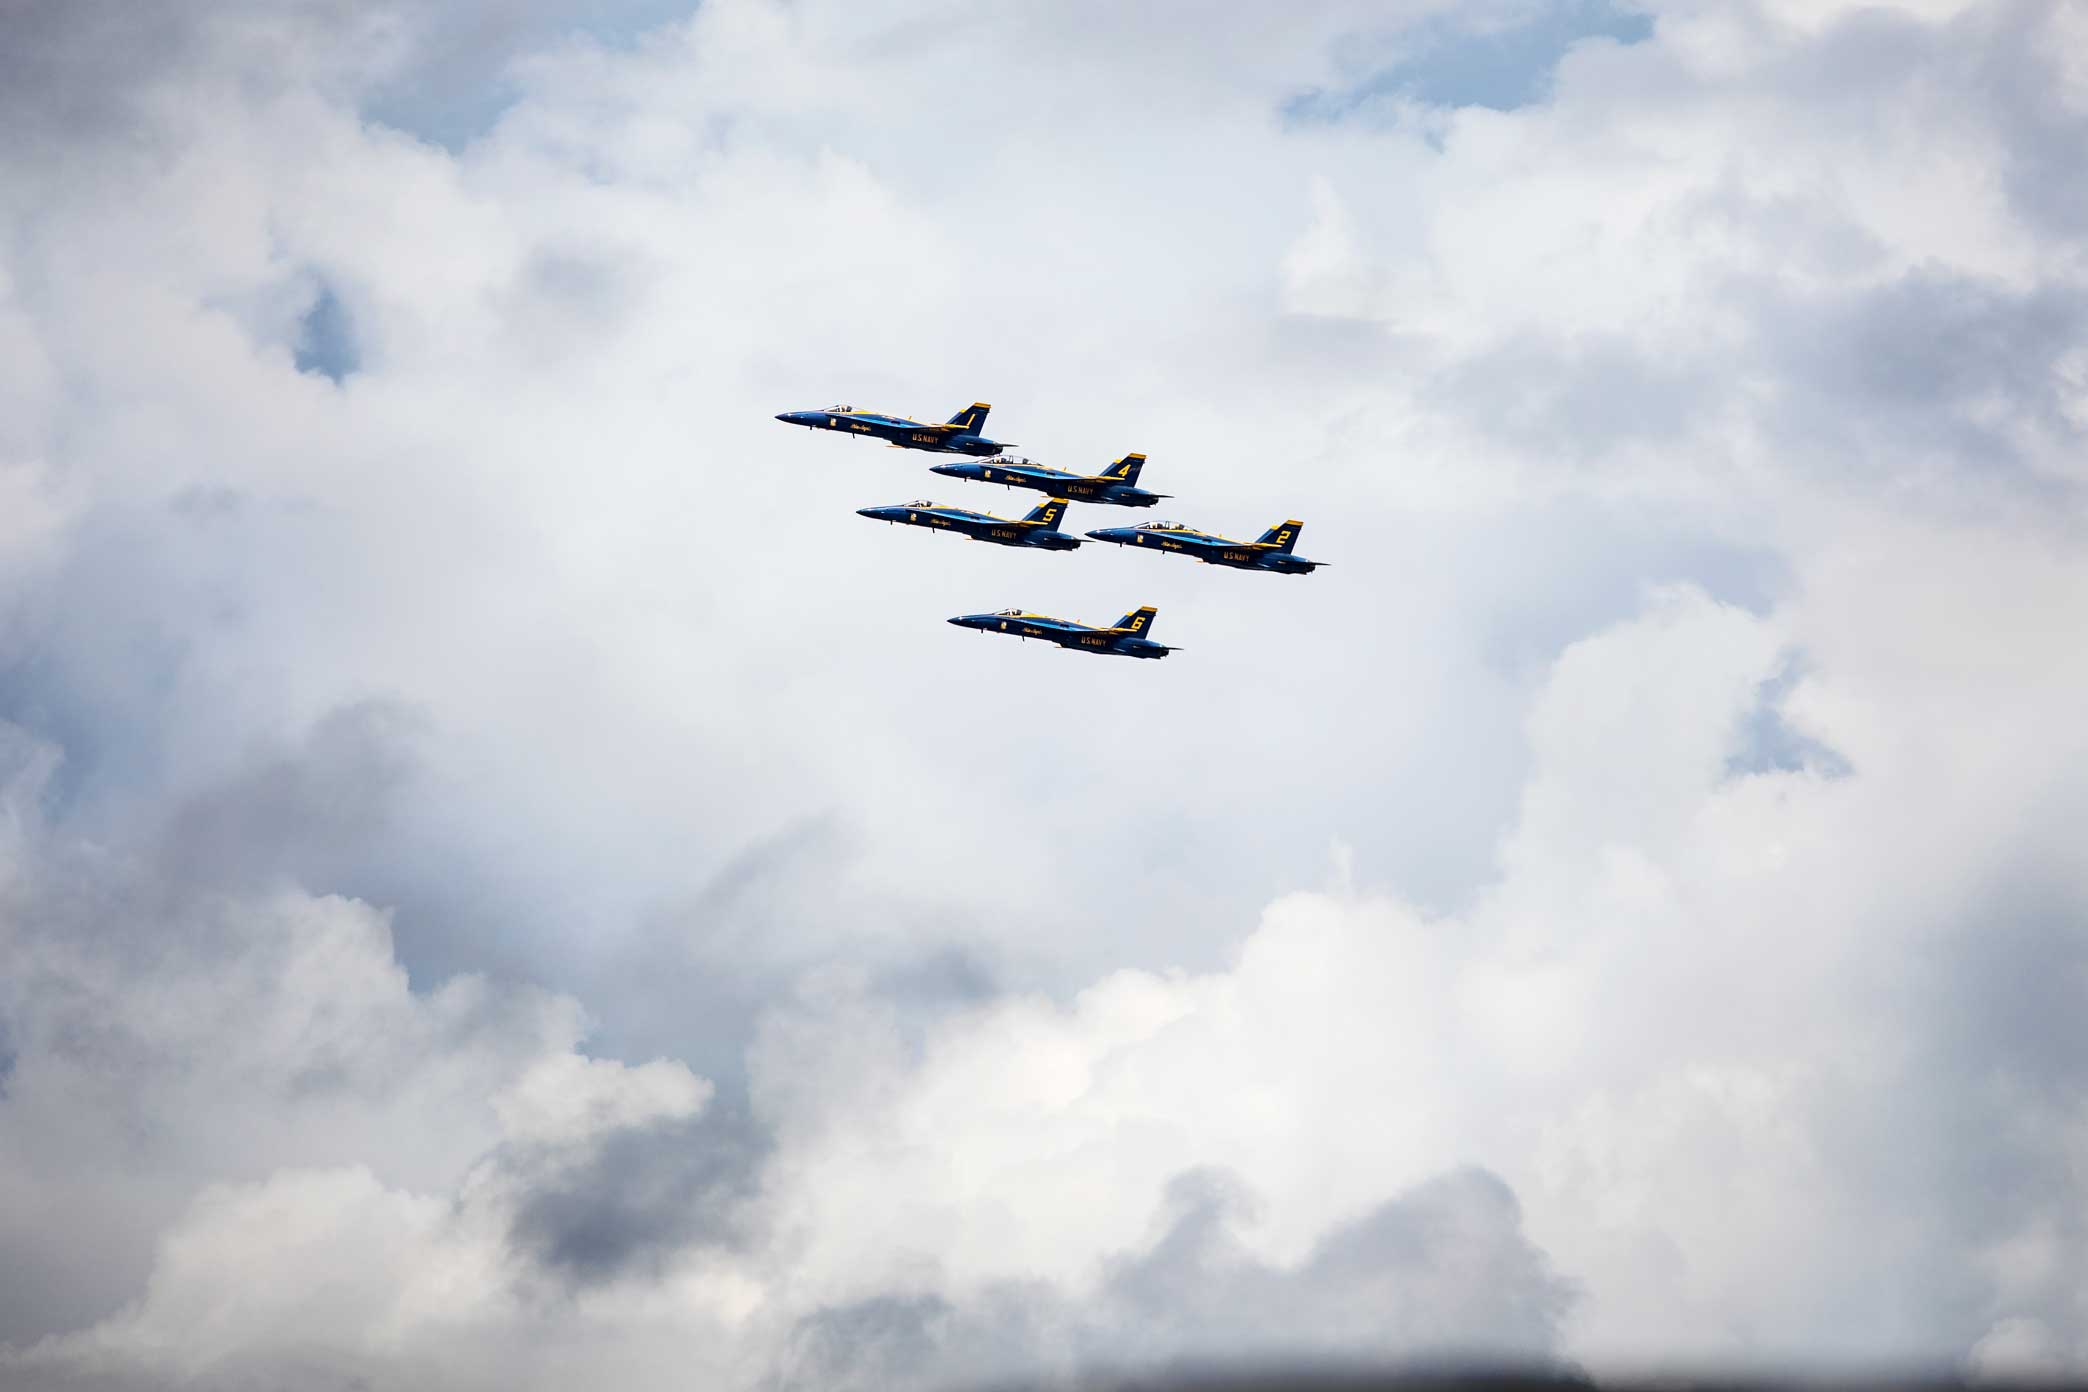 The U.S. Navy Blue Angels fly in formation during practice above the National Naval Aviation Museum in Pensacola, Florida.Canon 5D Mark IV